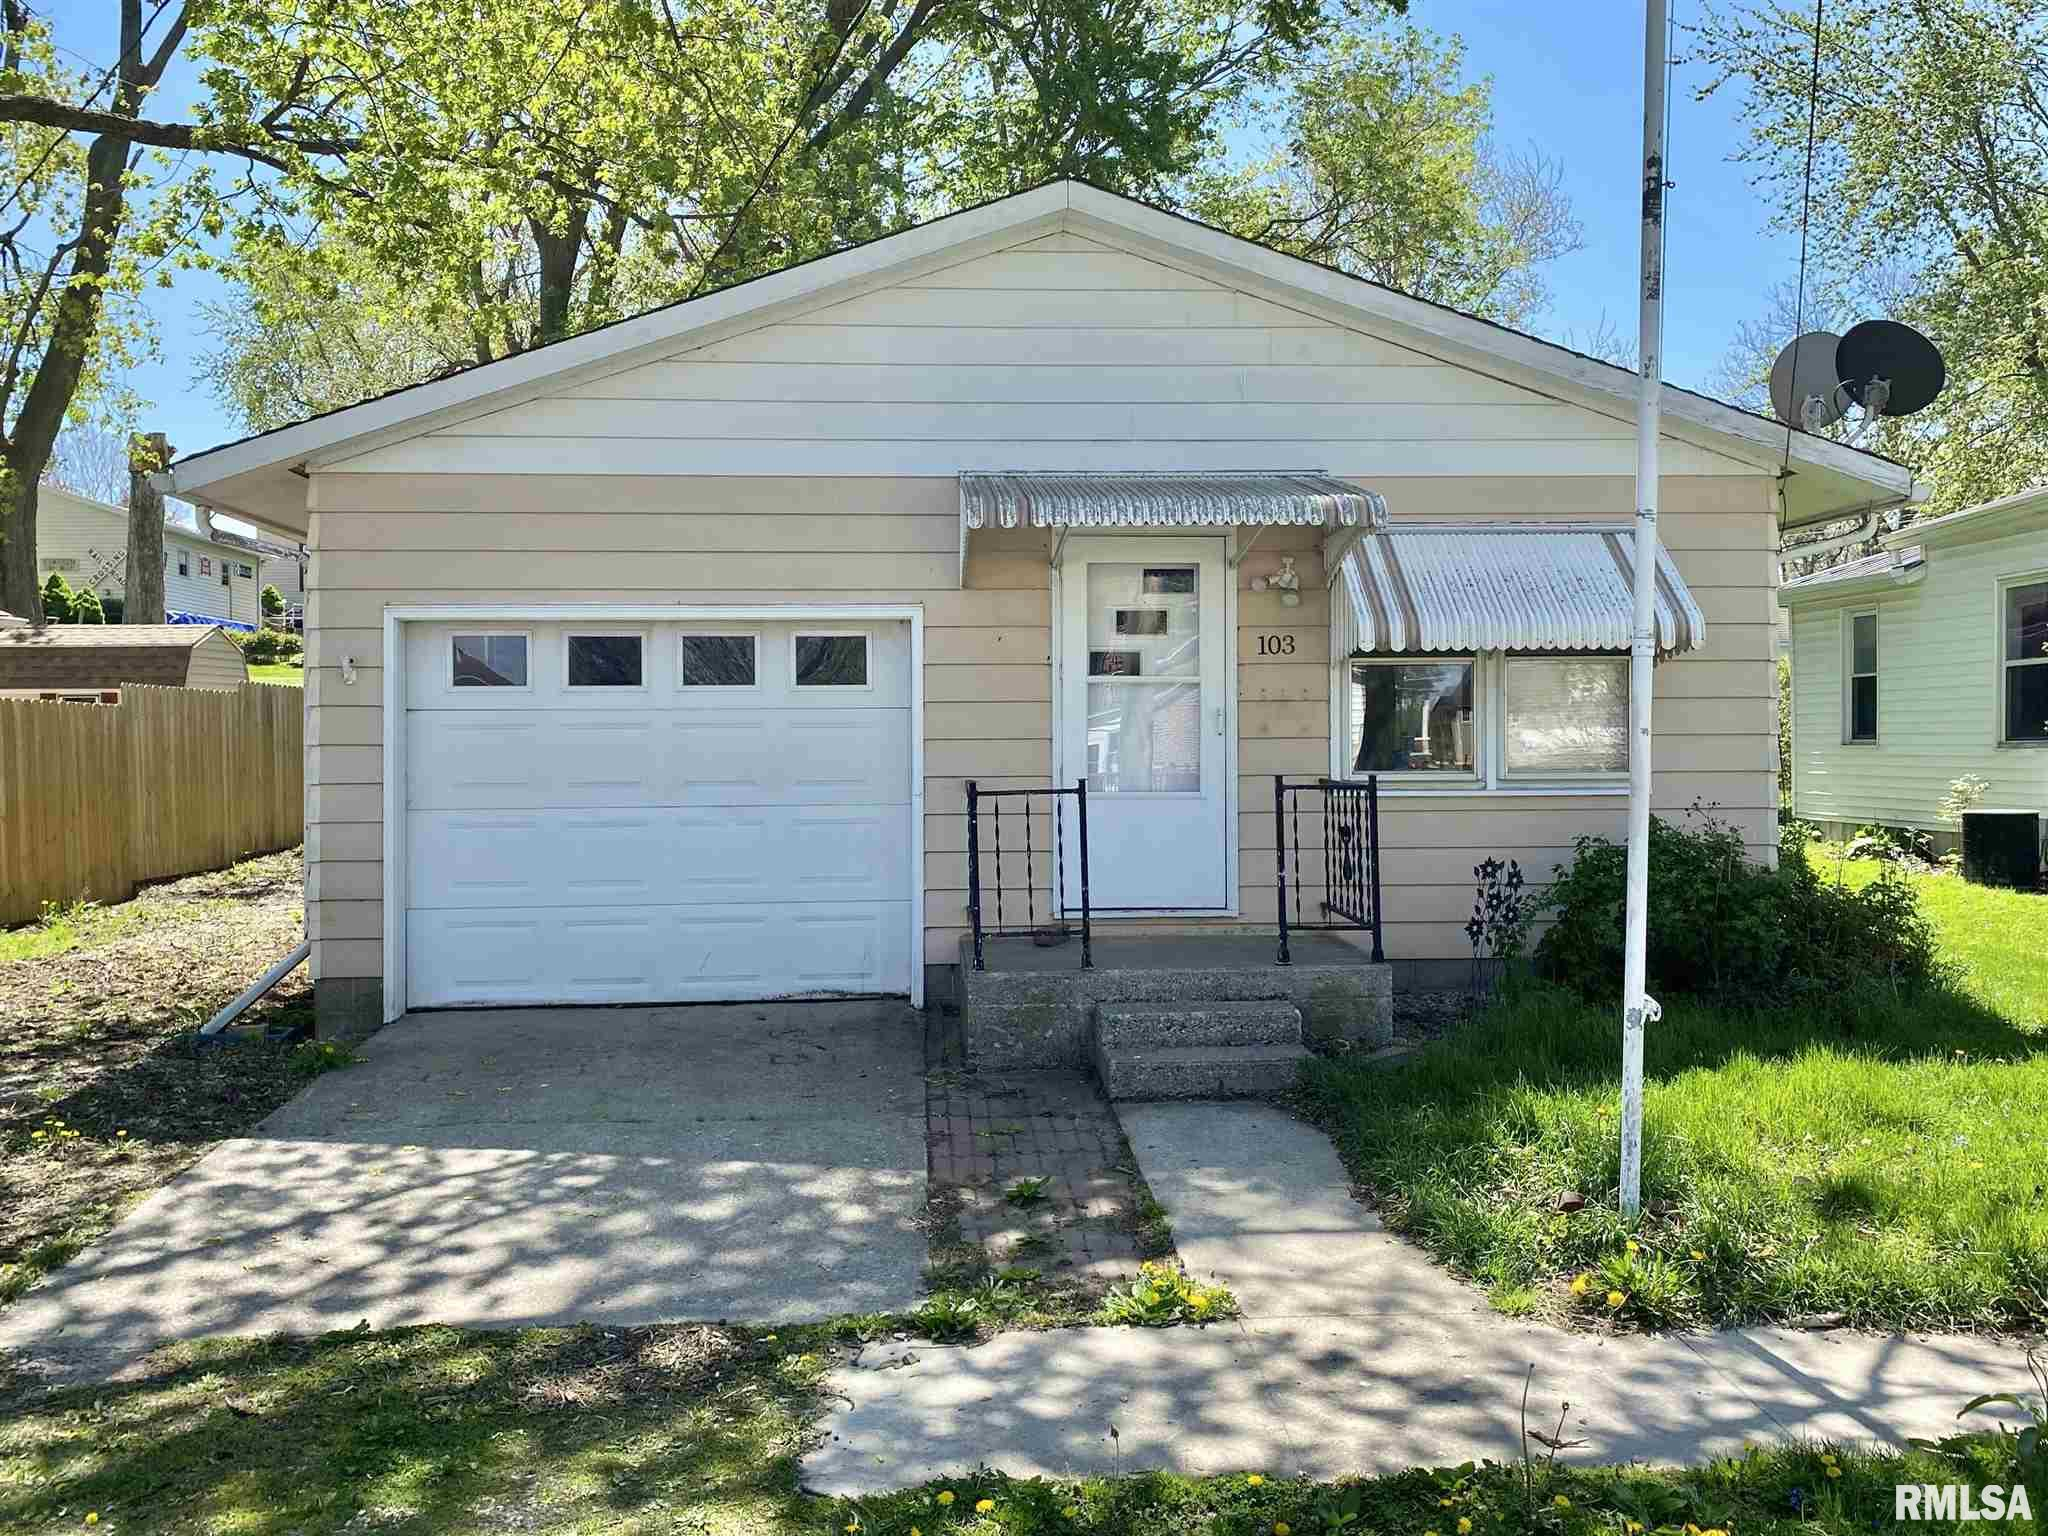 103 N BLUFF Property Photo - Albany, IL real estate listing